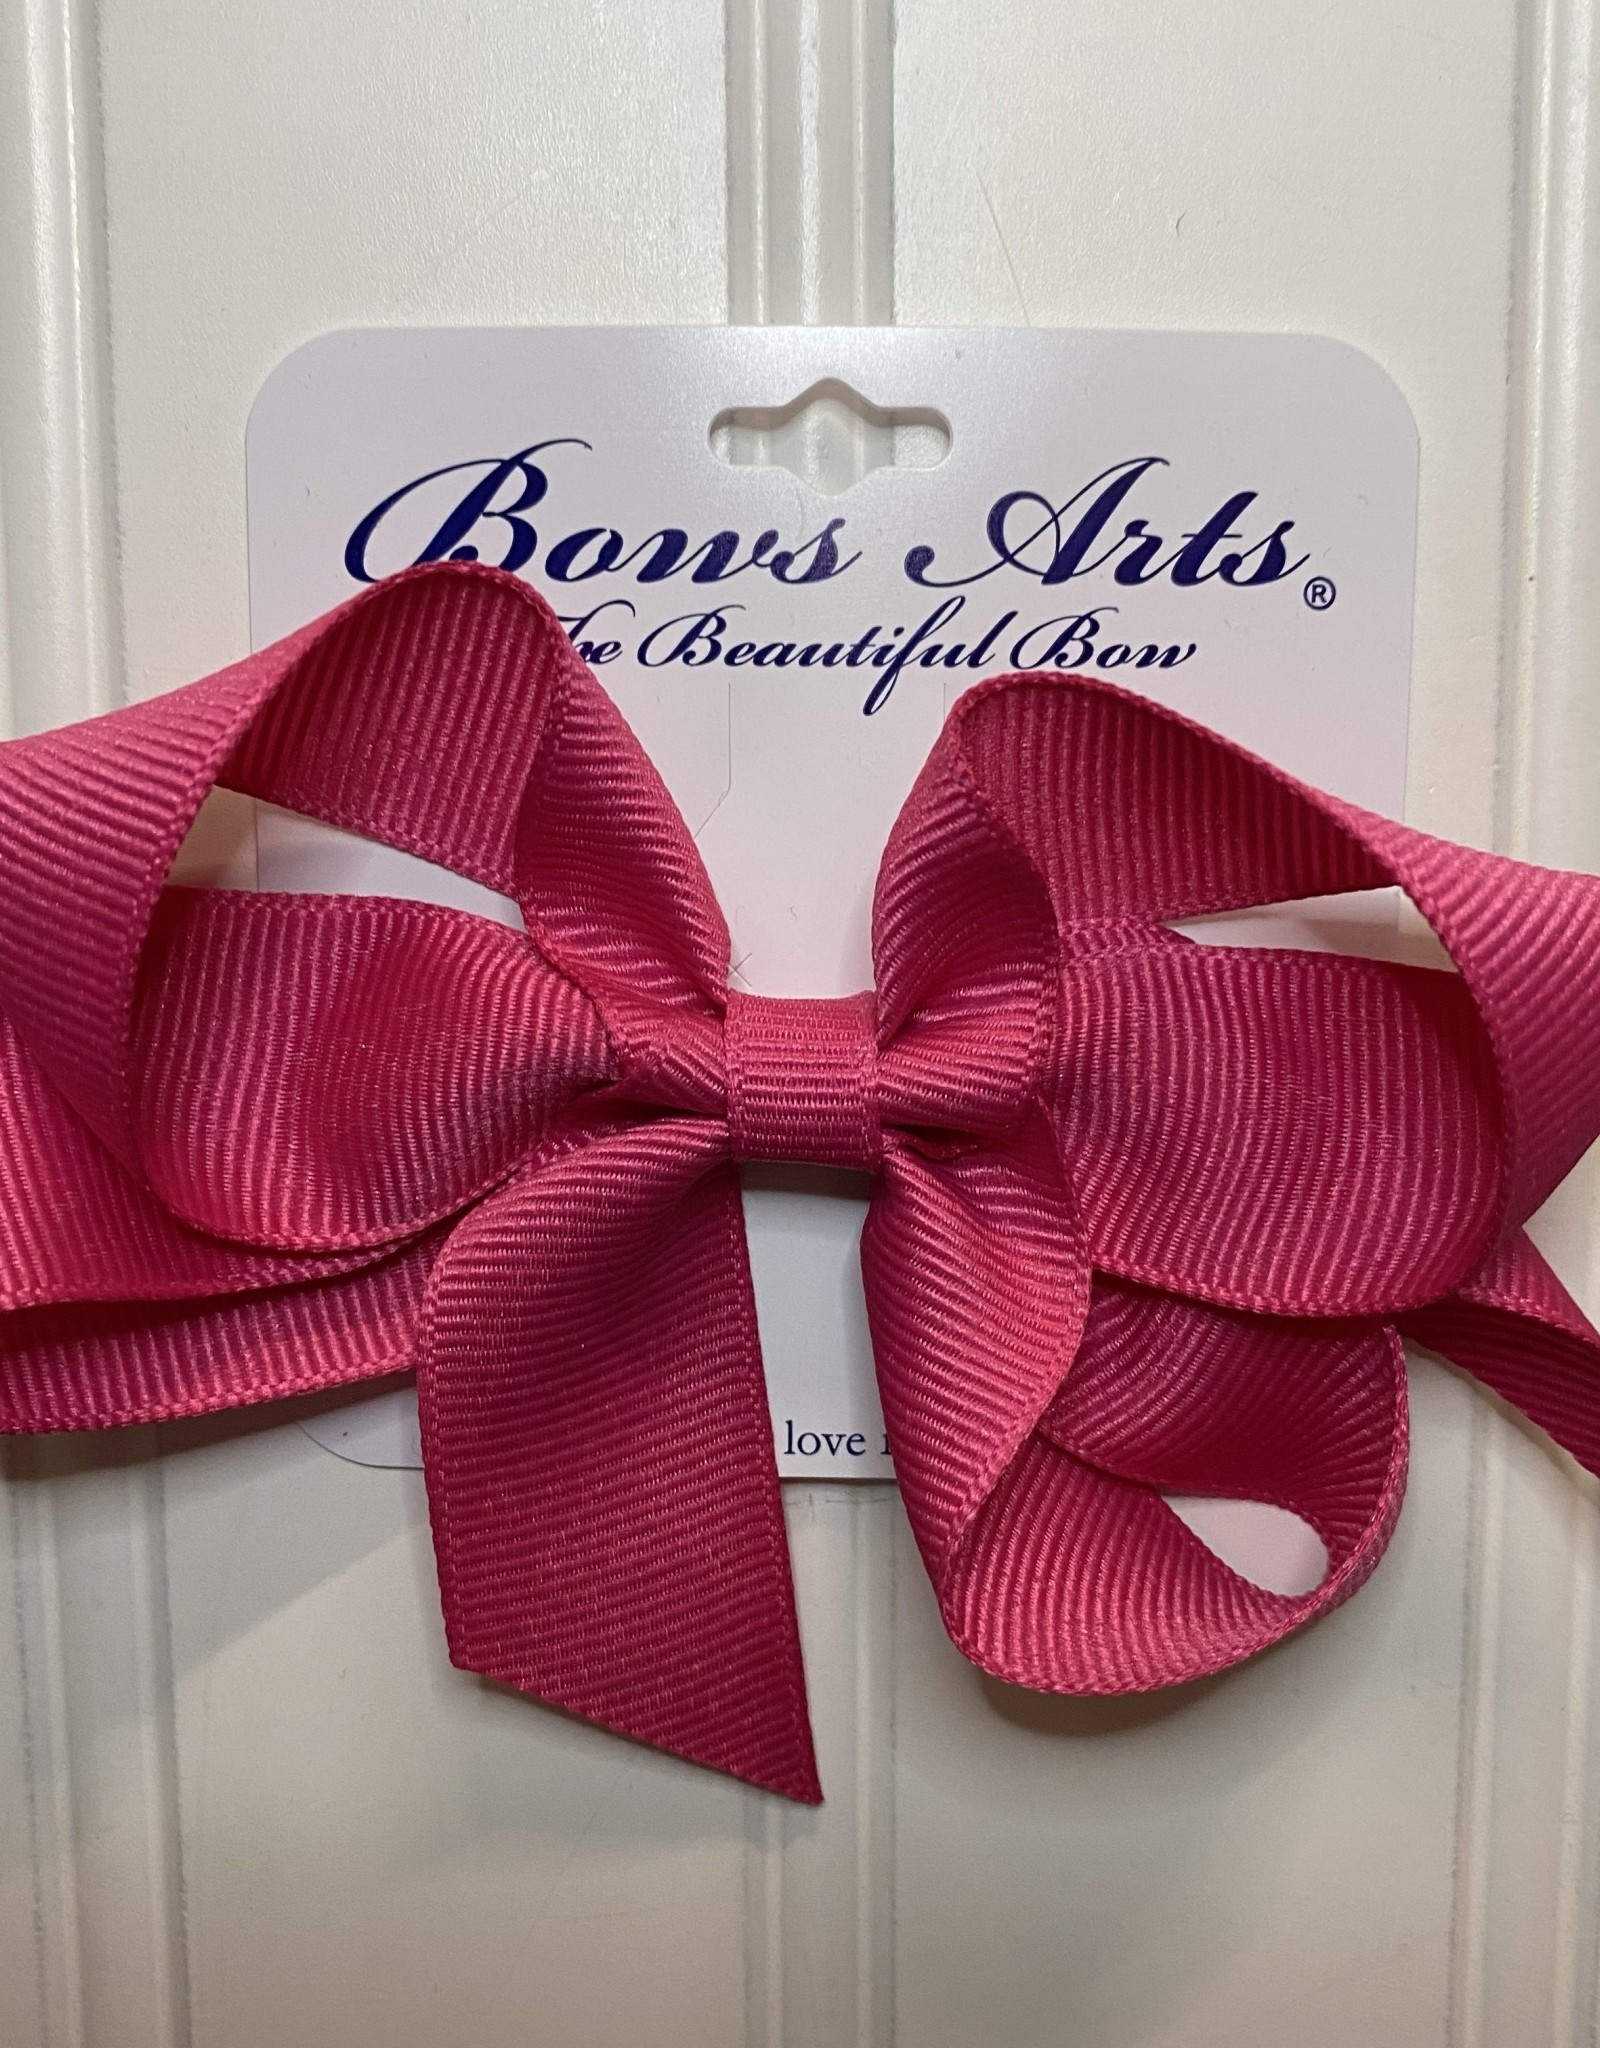 "Bows Arts Small Classic Bow 4"" - Shocking Pink"